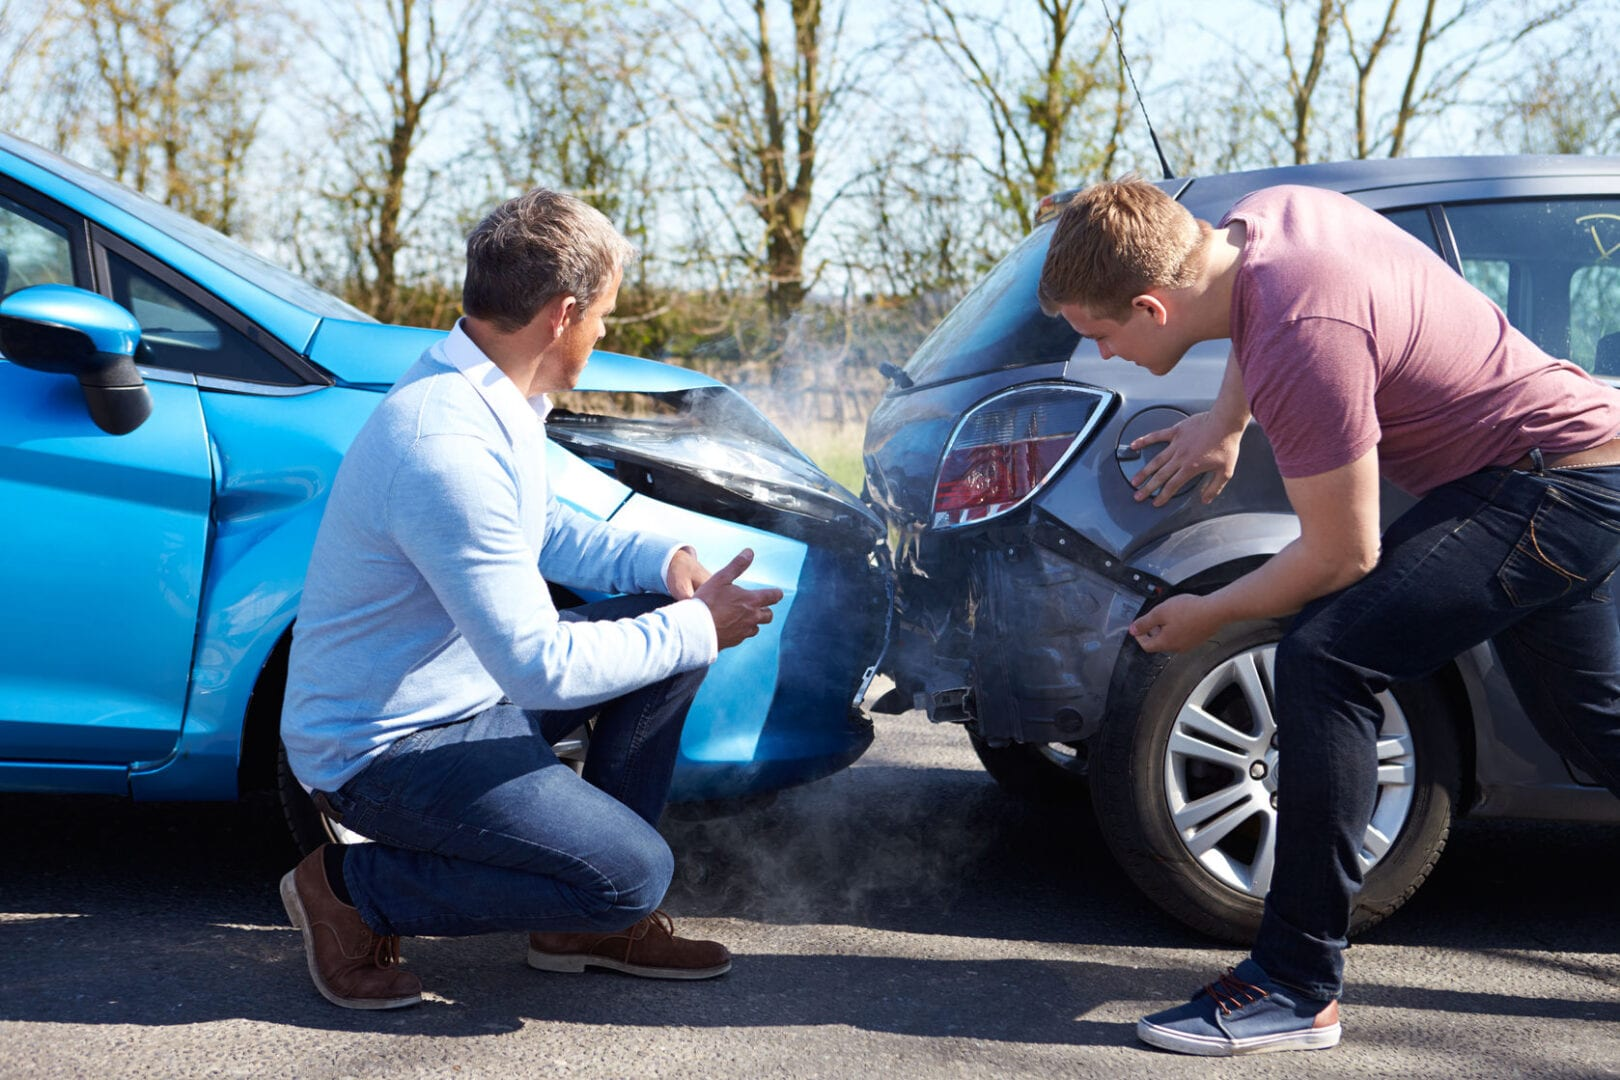 Top Tips to follow at a Road Traffic Collision Scene